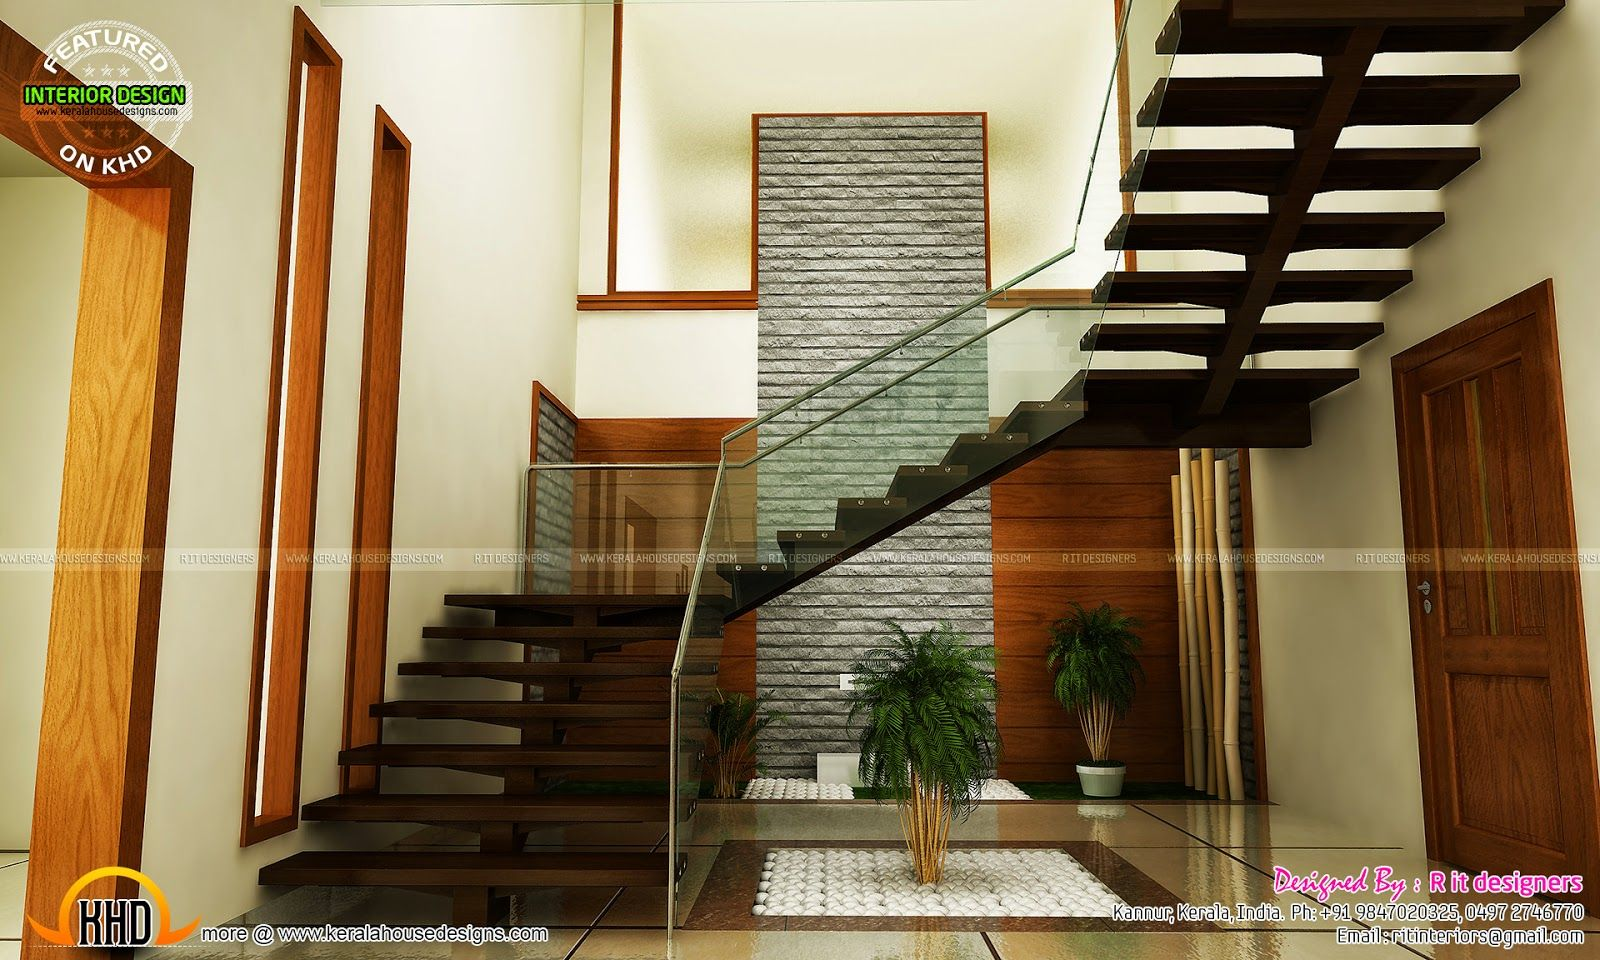 staircase bedroom dining interiors kerala home design my dream rh pinterest com indian style two floor house designs staircase elevation indian duplex house staircase designs